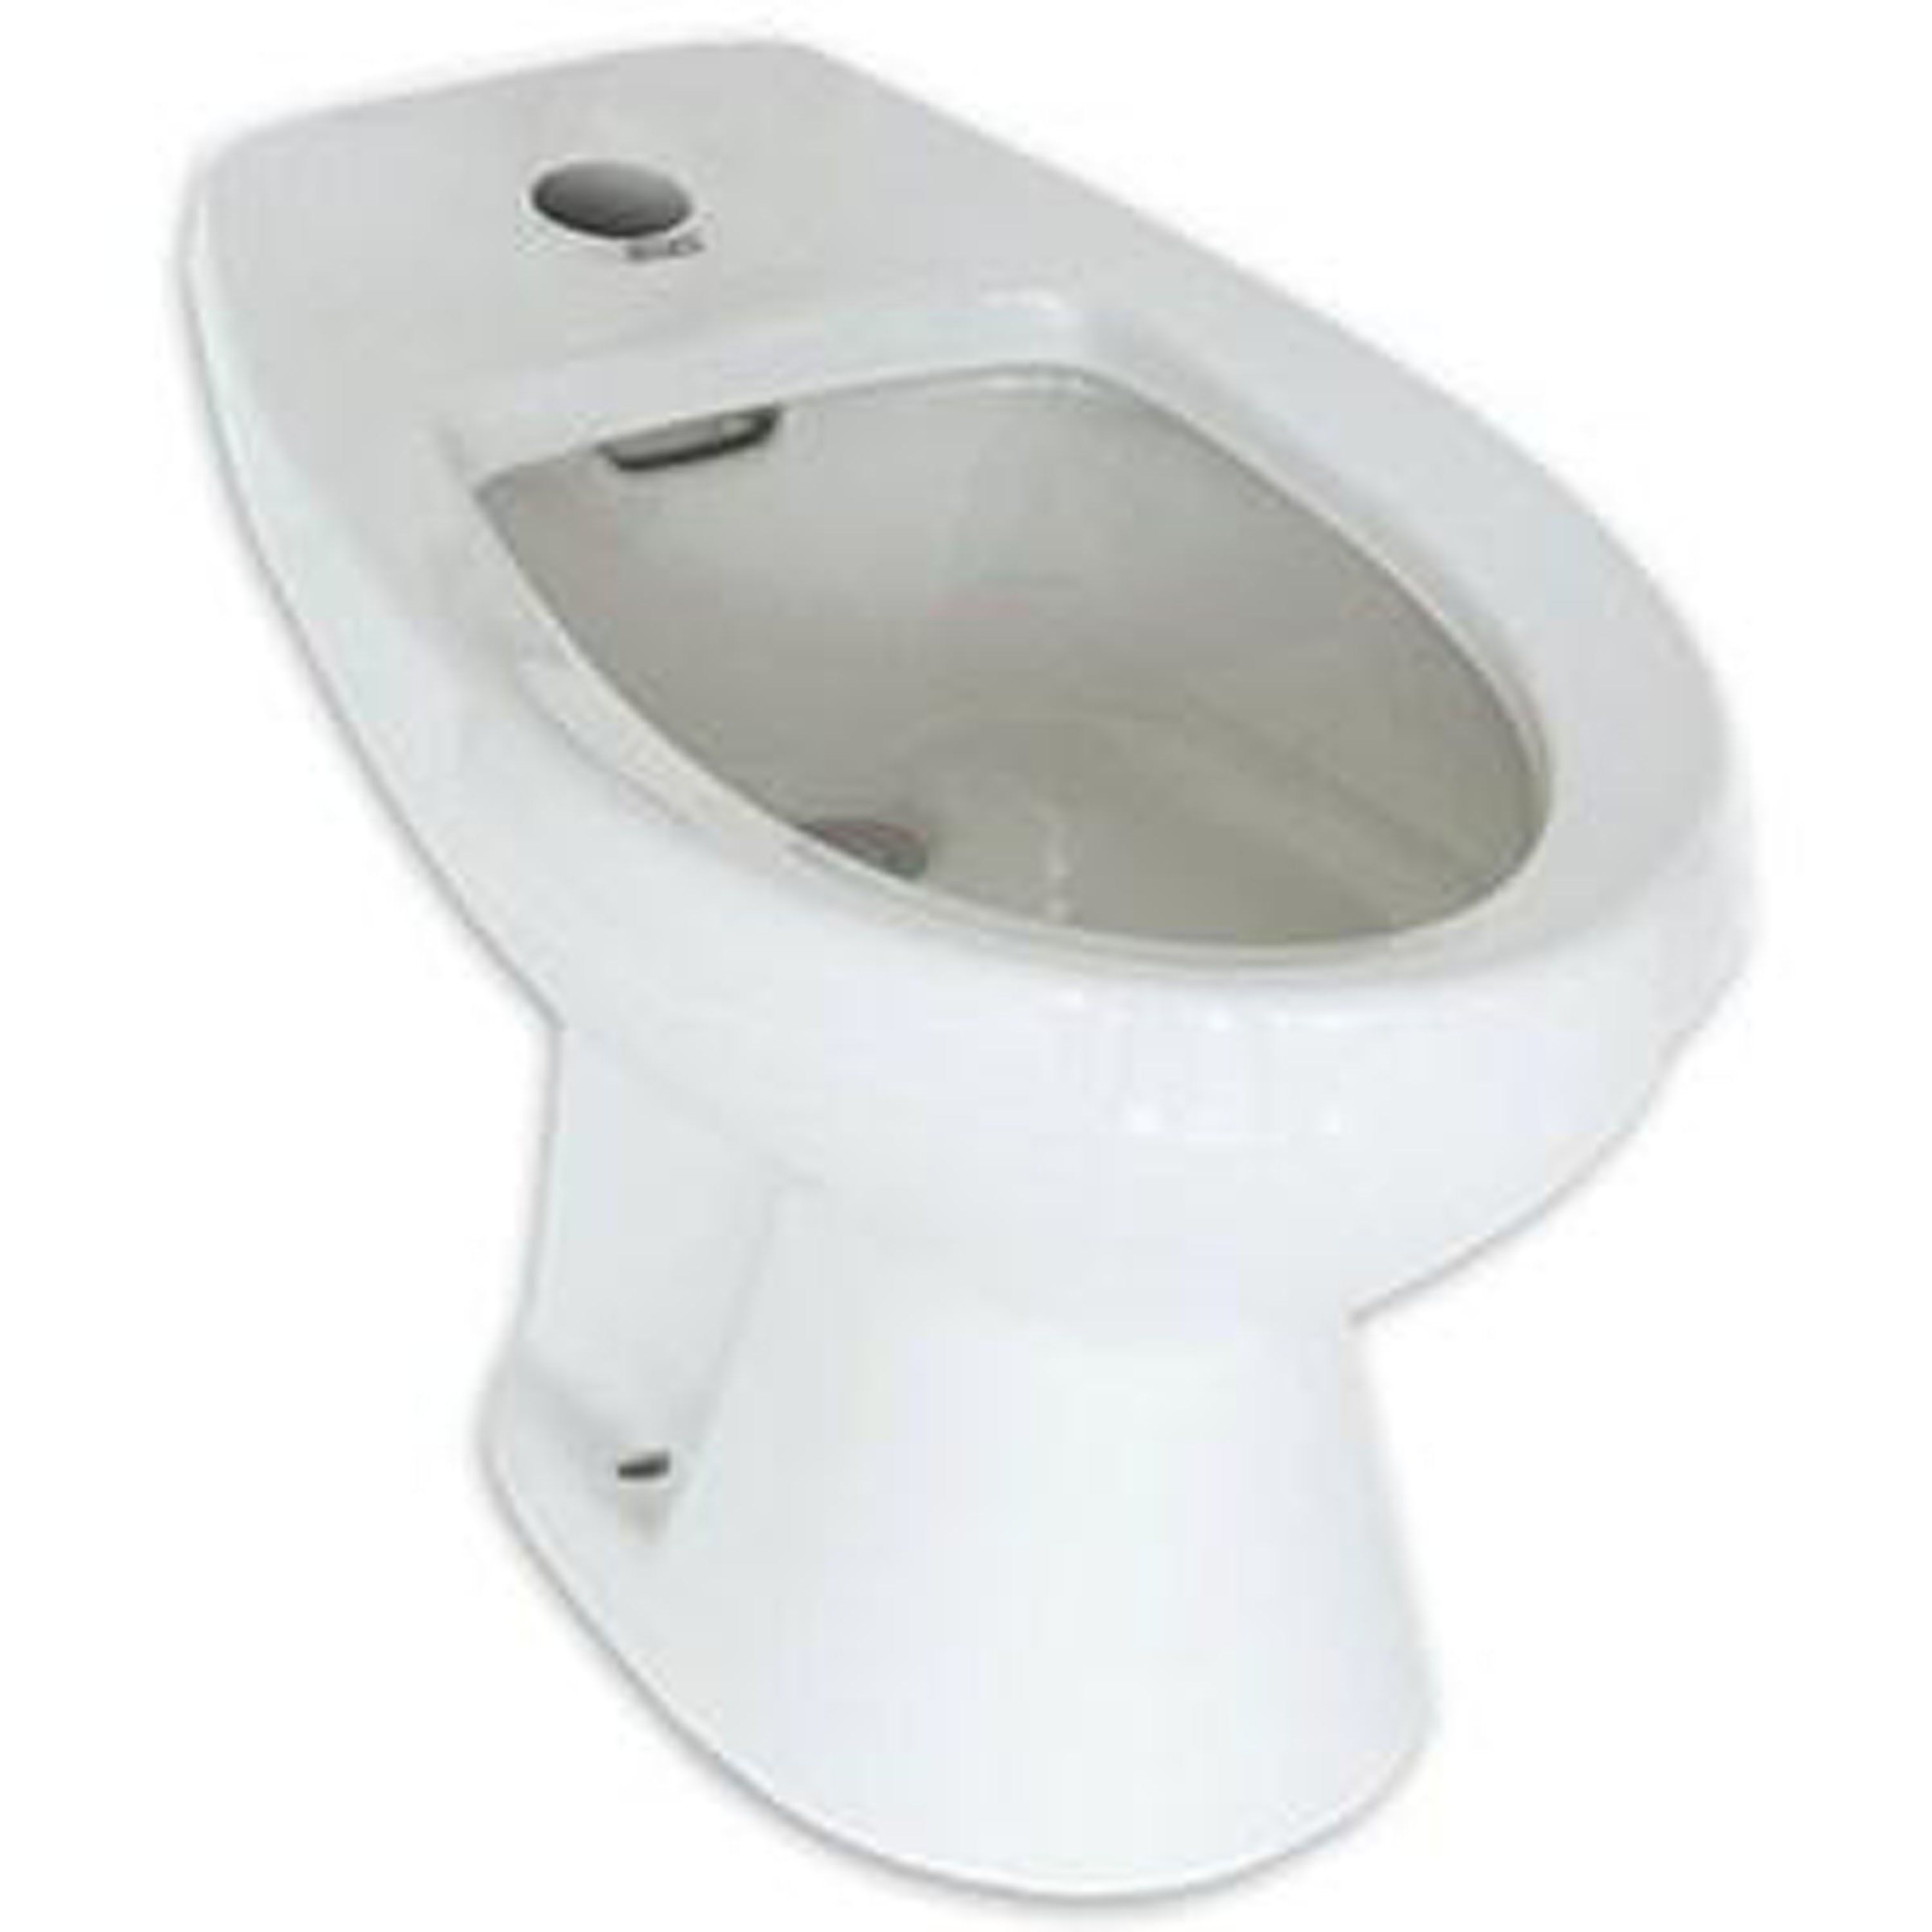 Buy American Standard Cadet Bidet At Tapandfaucet Com For Only